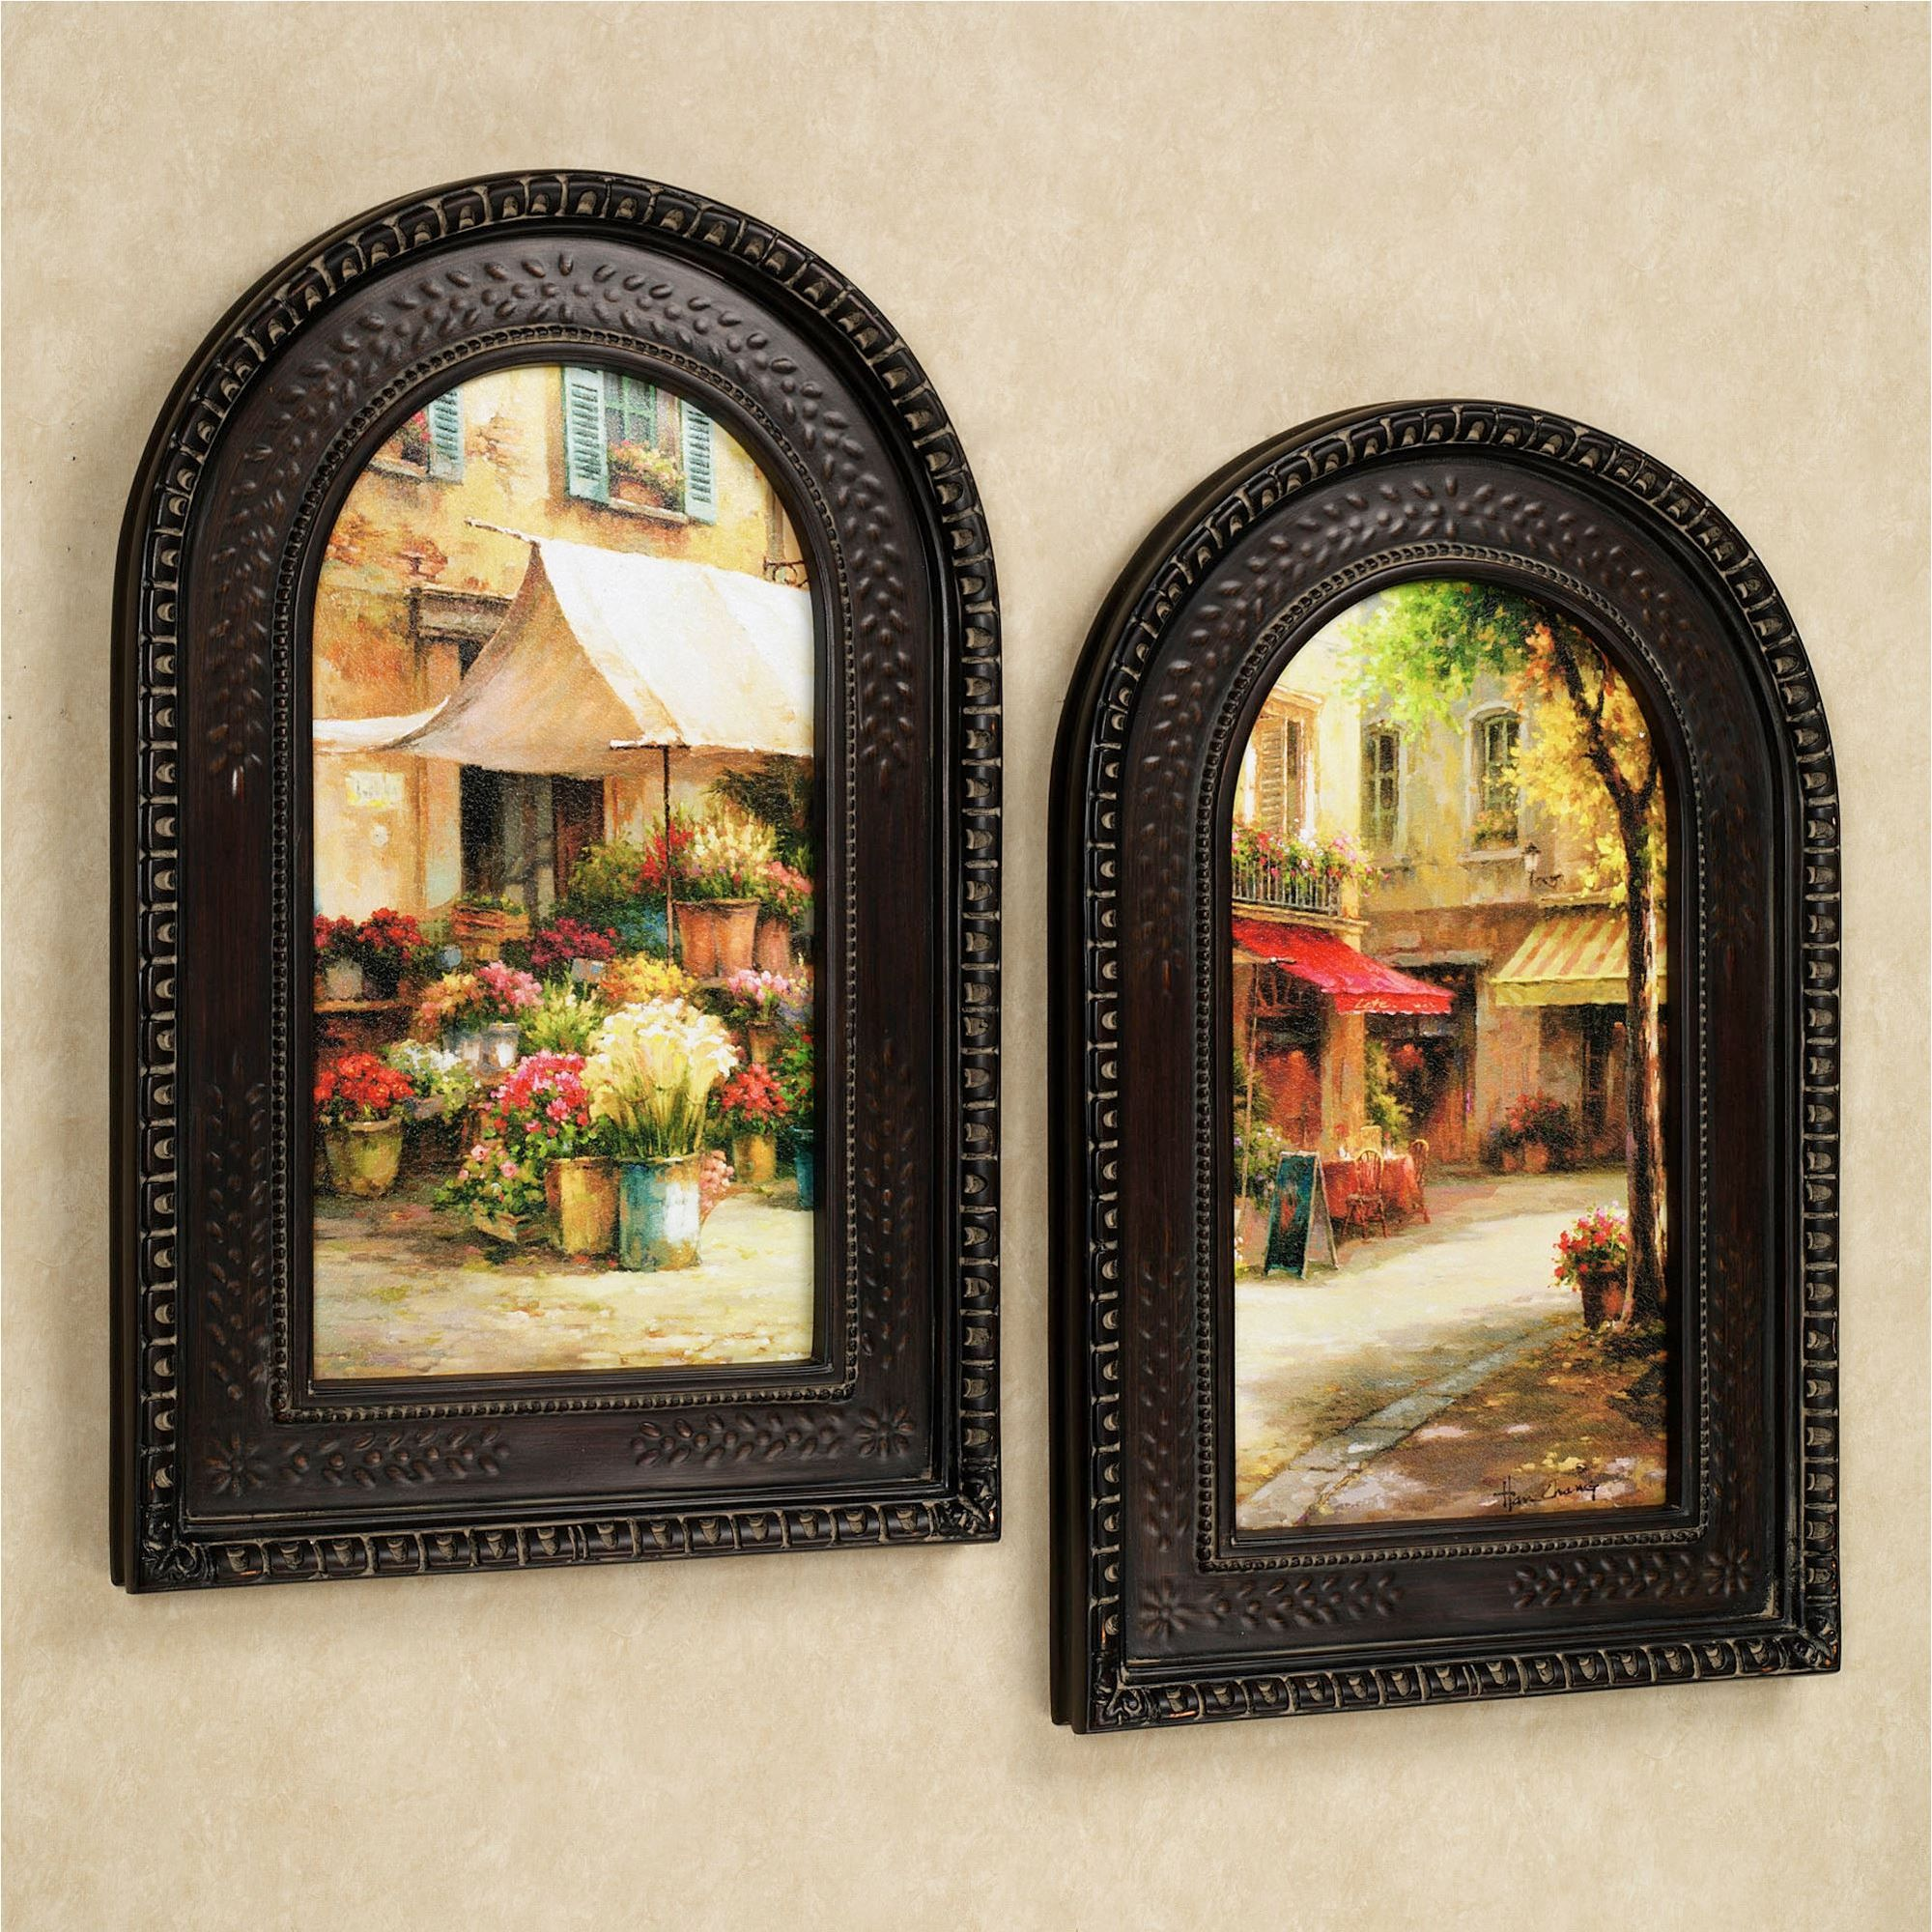 The Flower Market Arched Framed Wall Art Set | Framed art prints ...